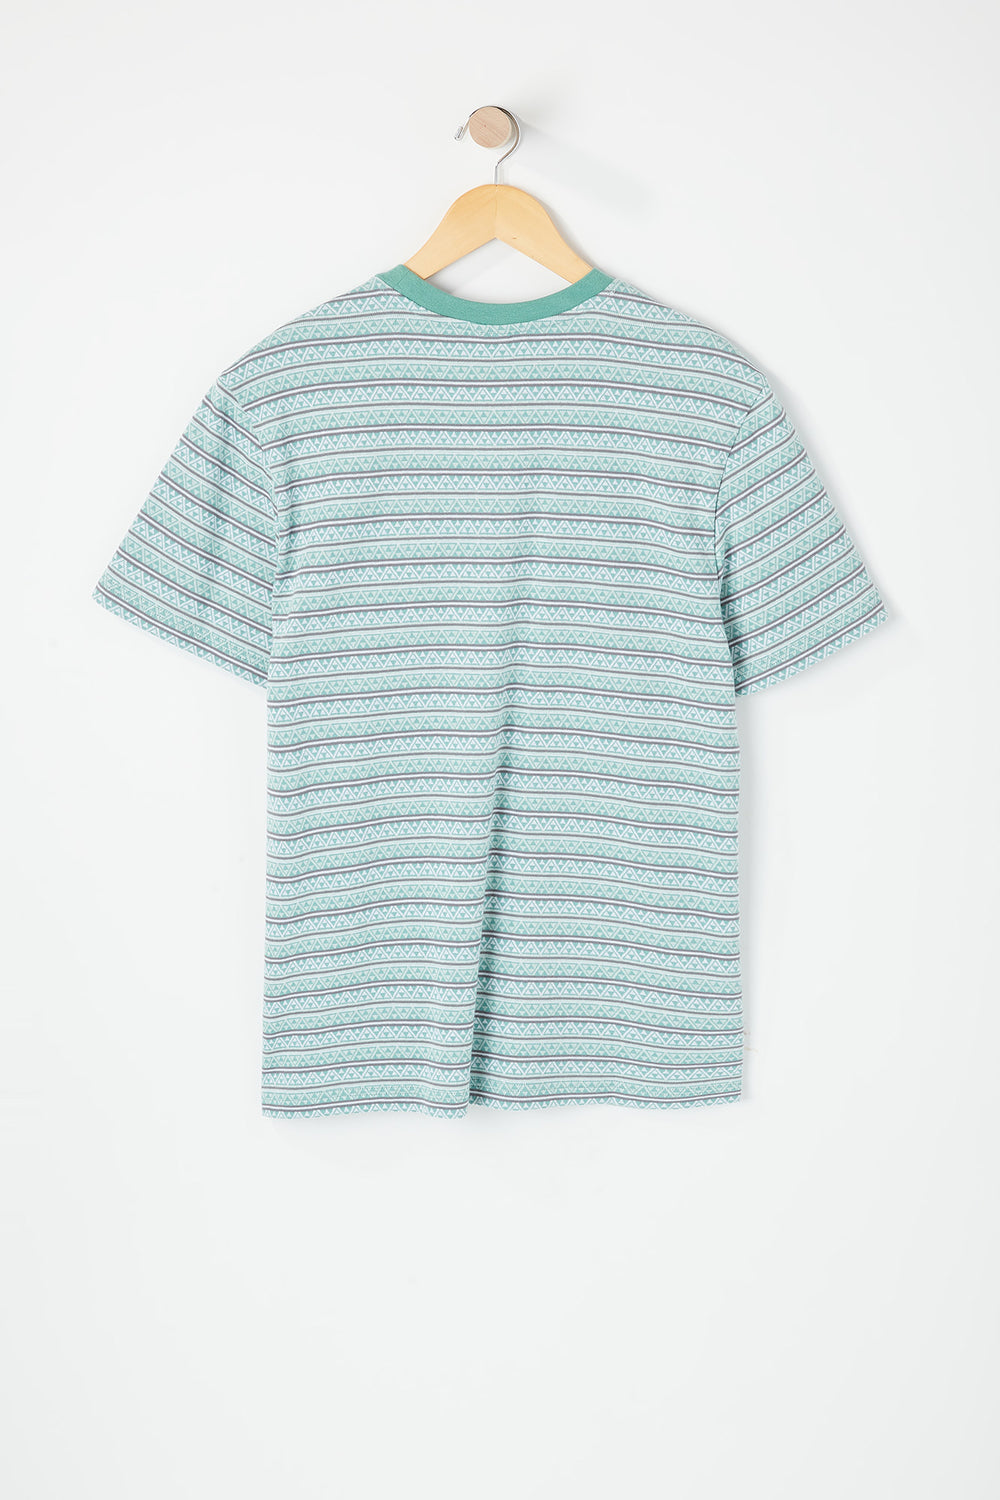 Huf Mens Striped T-Shirt Light Blue